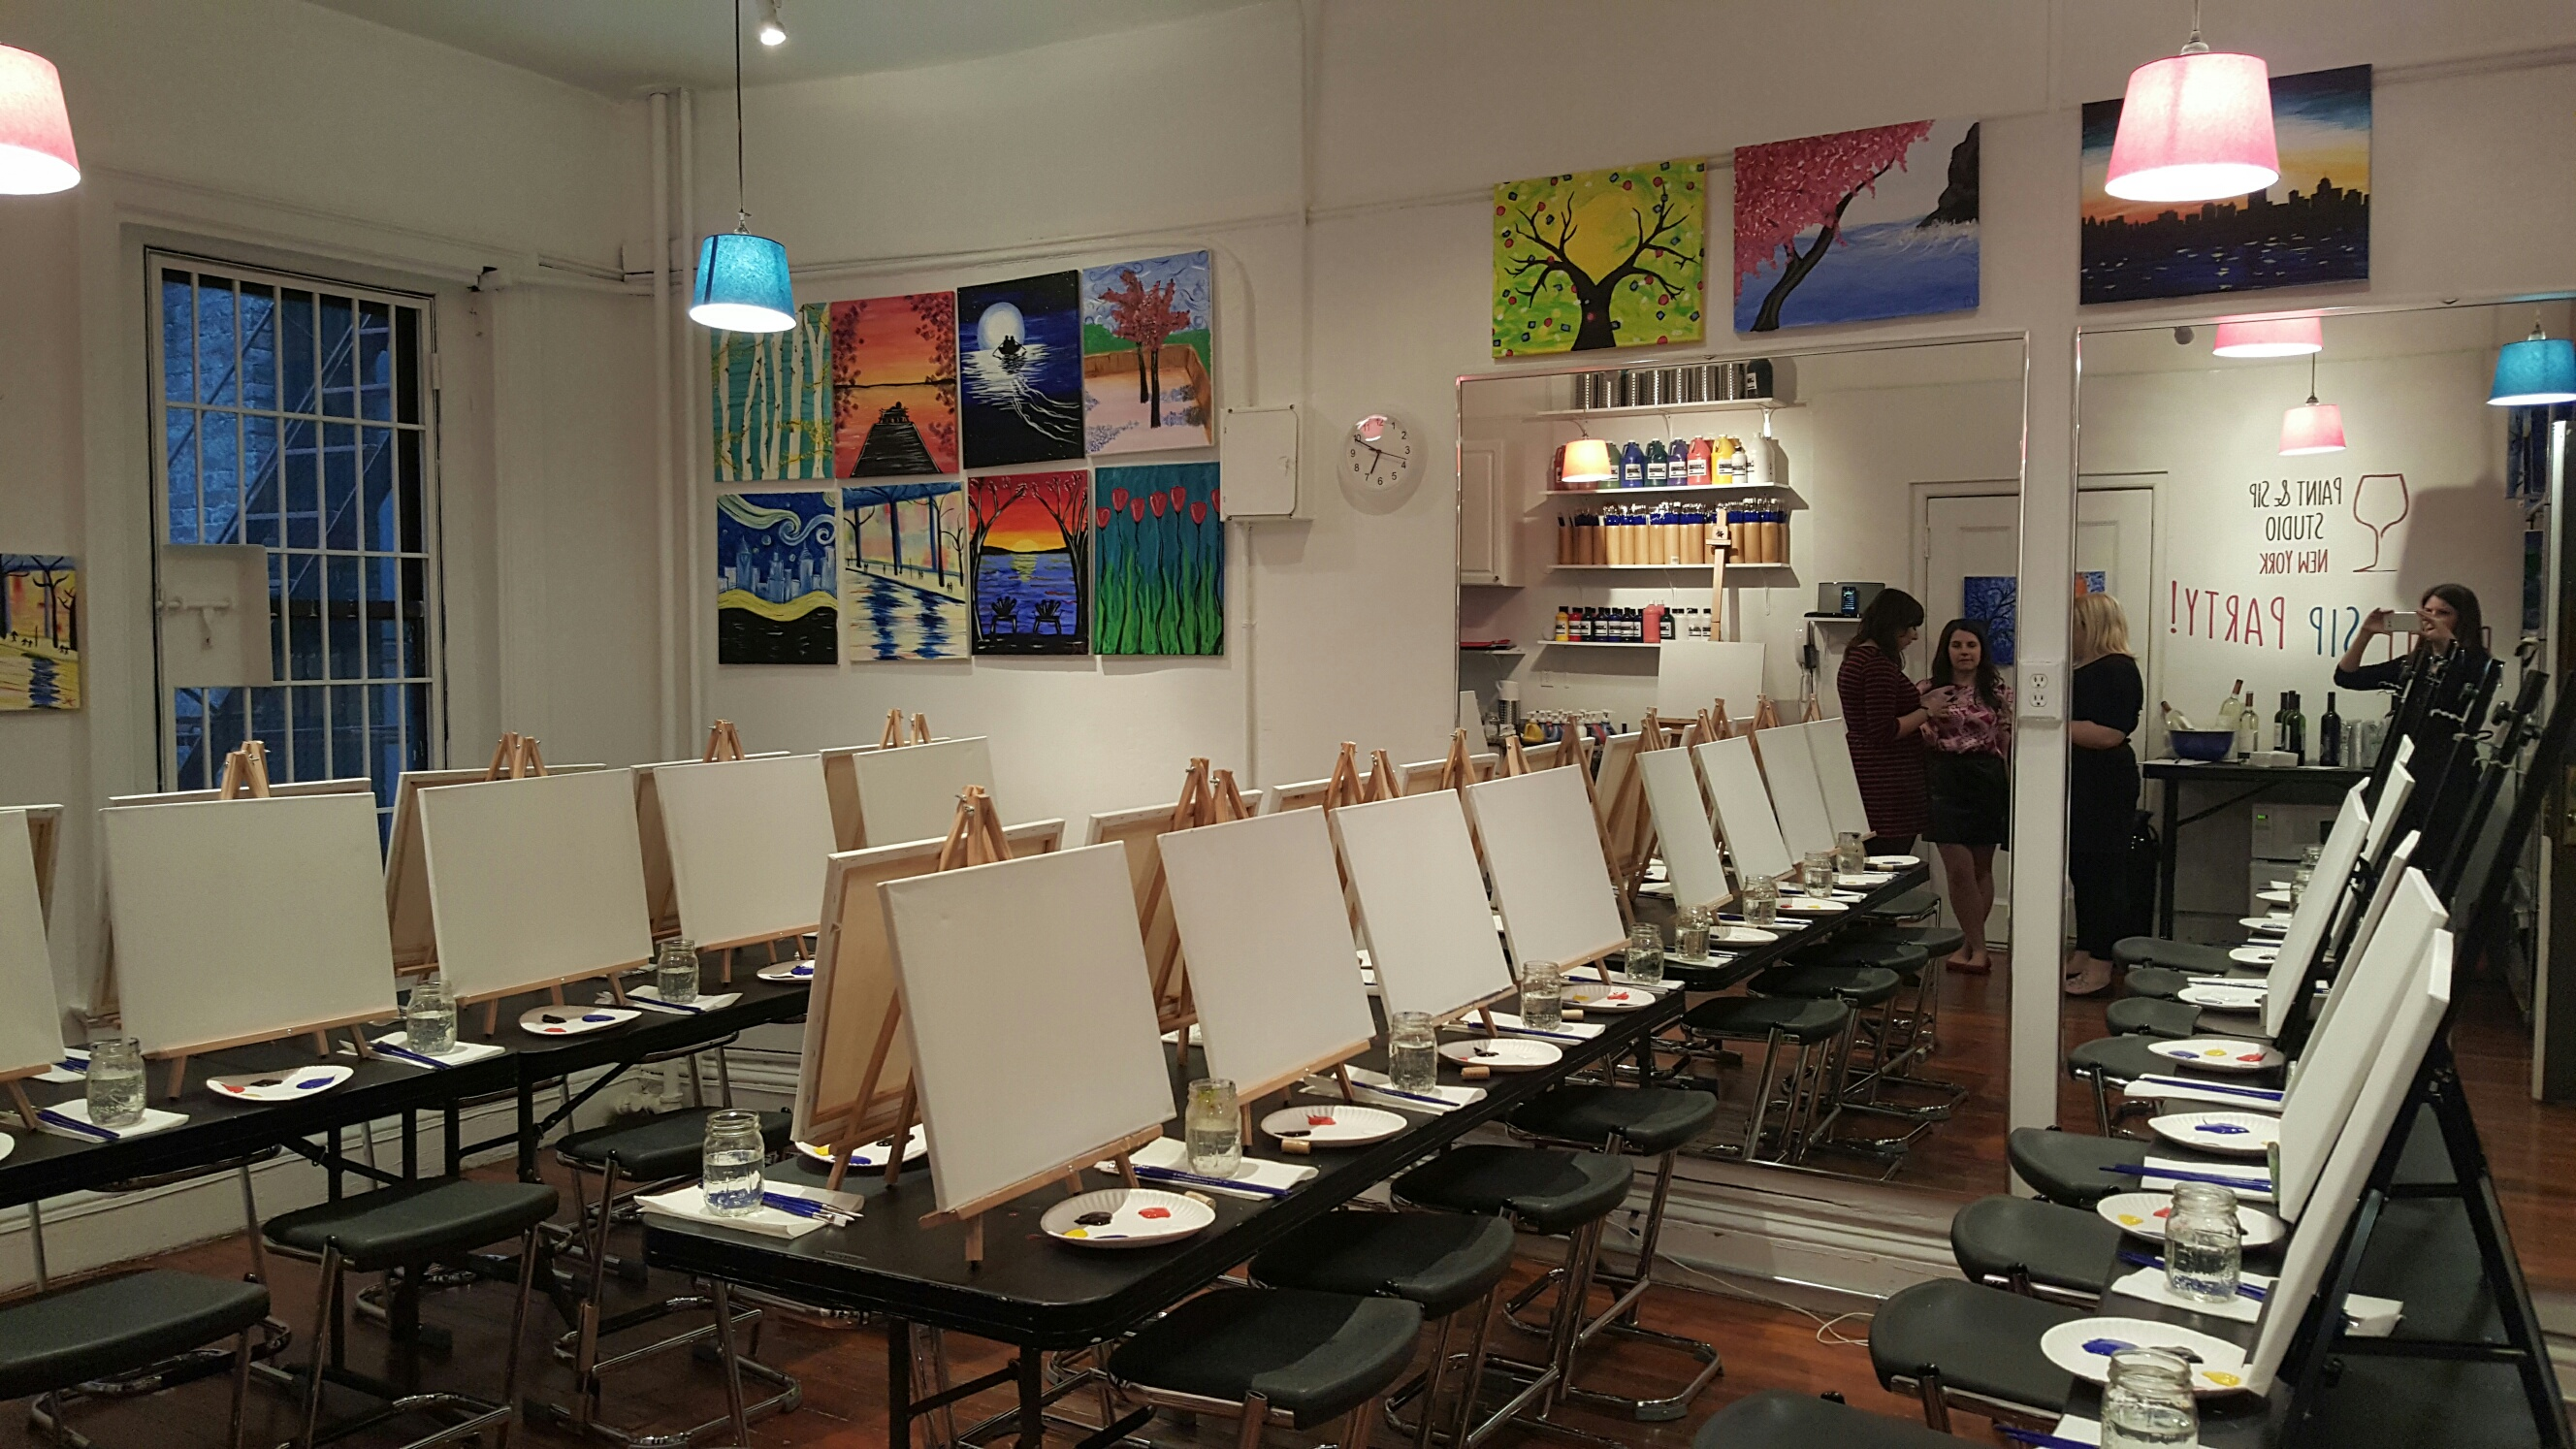 Paint sip studio opening fun nyc activities for 151 west broadway 4th floor new york ny 10013